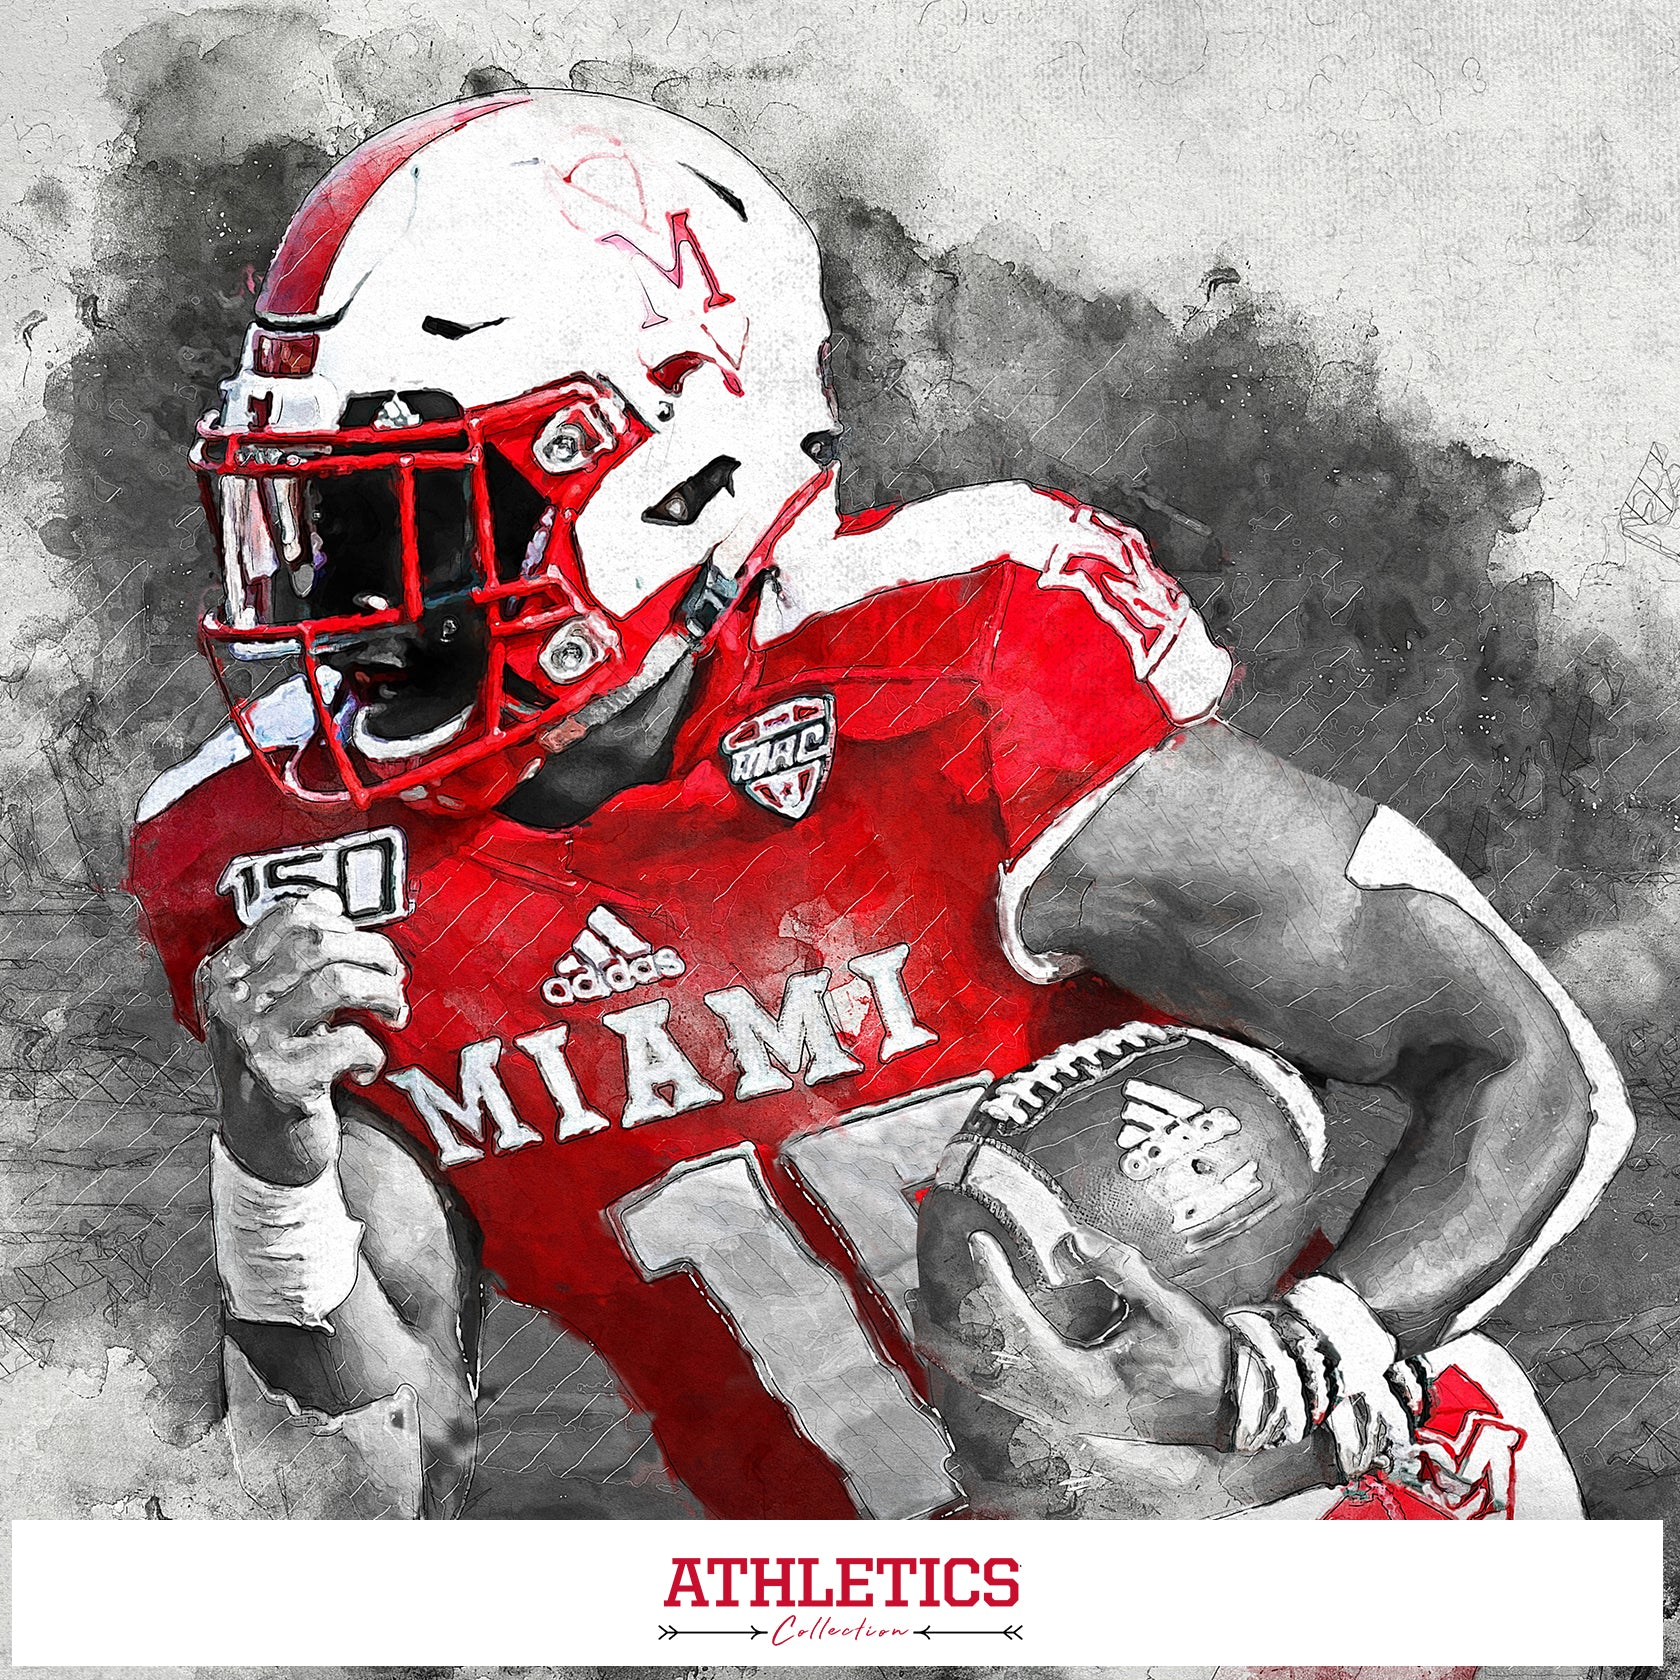 Miami Redhawks - Athletics